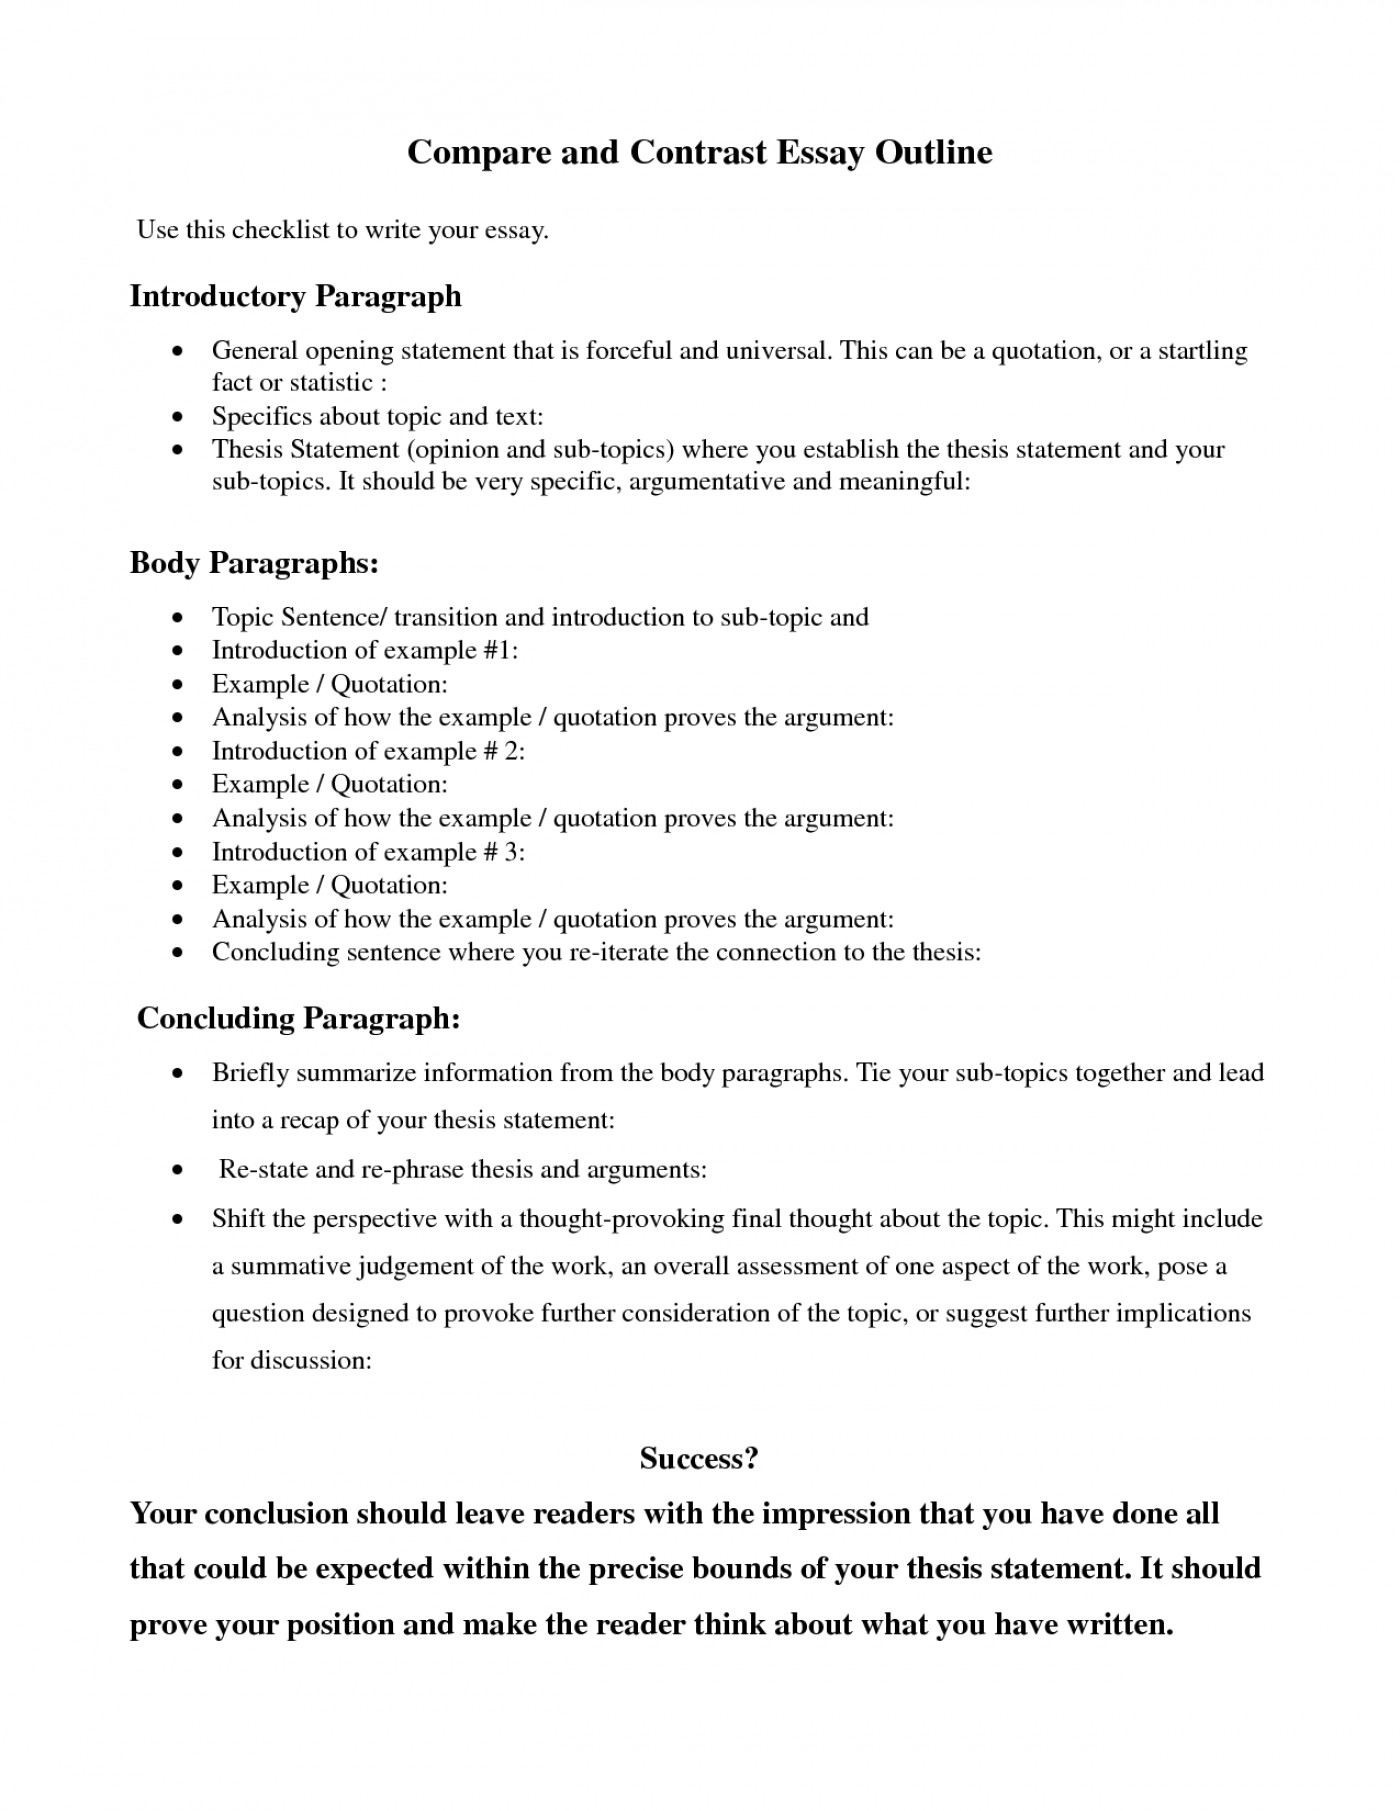 001 Compare And Contrast Essay Example Frightening Prompts 5th Grade Rubric College Ideas 12th 1400